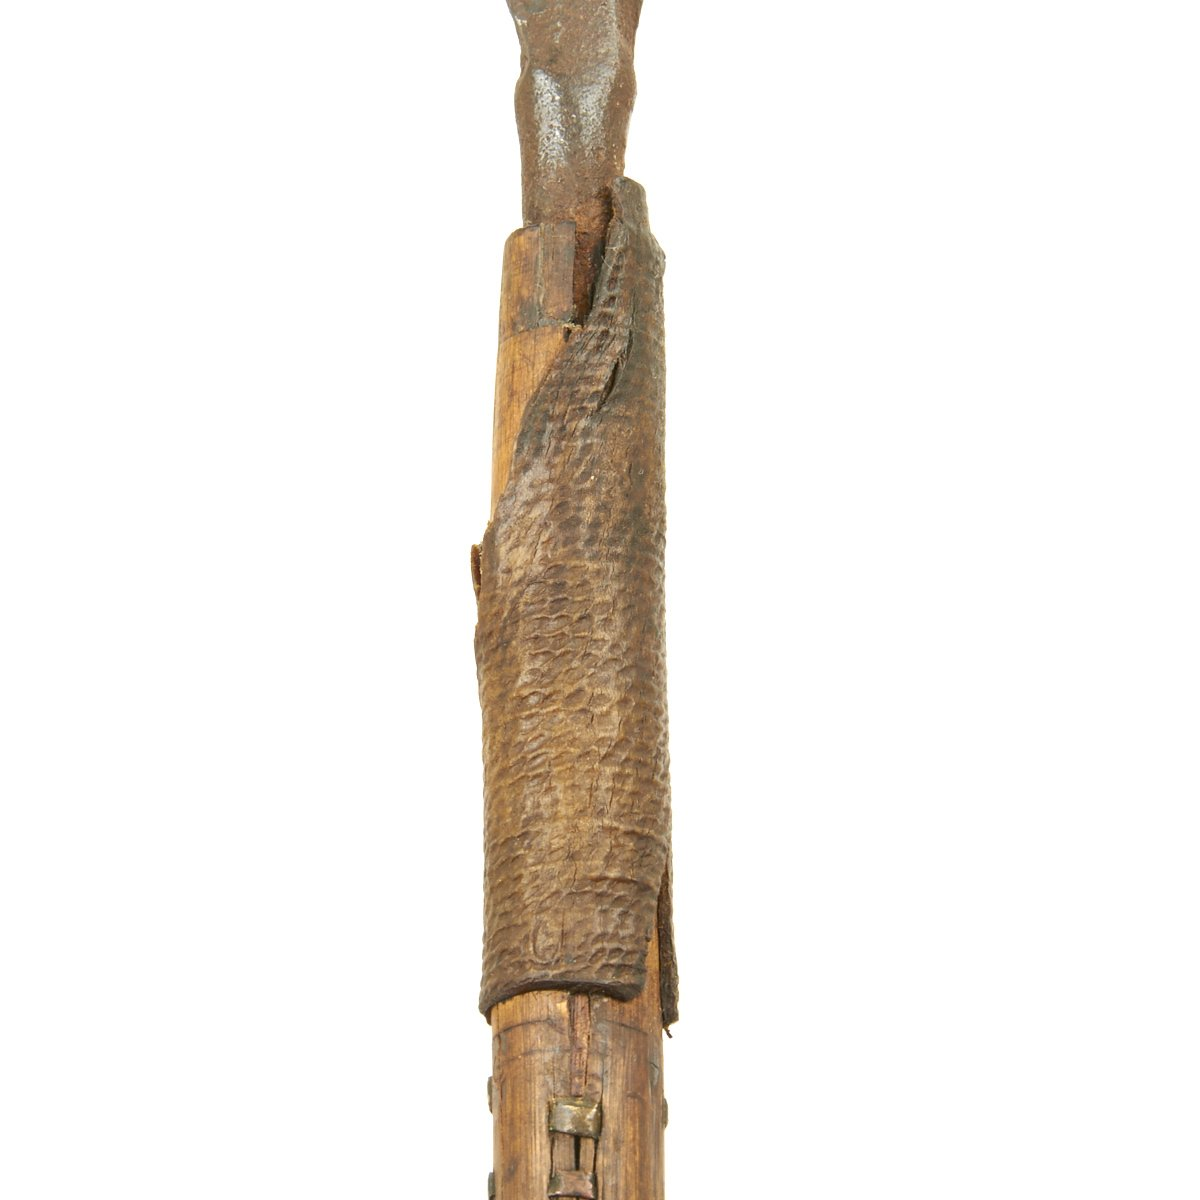 Original Early Zulu Assegai Fighting Spear with Massive